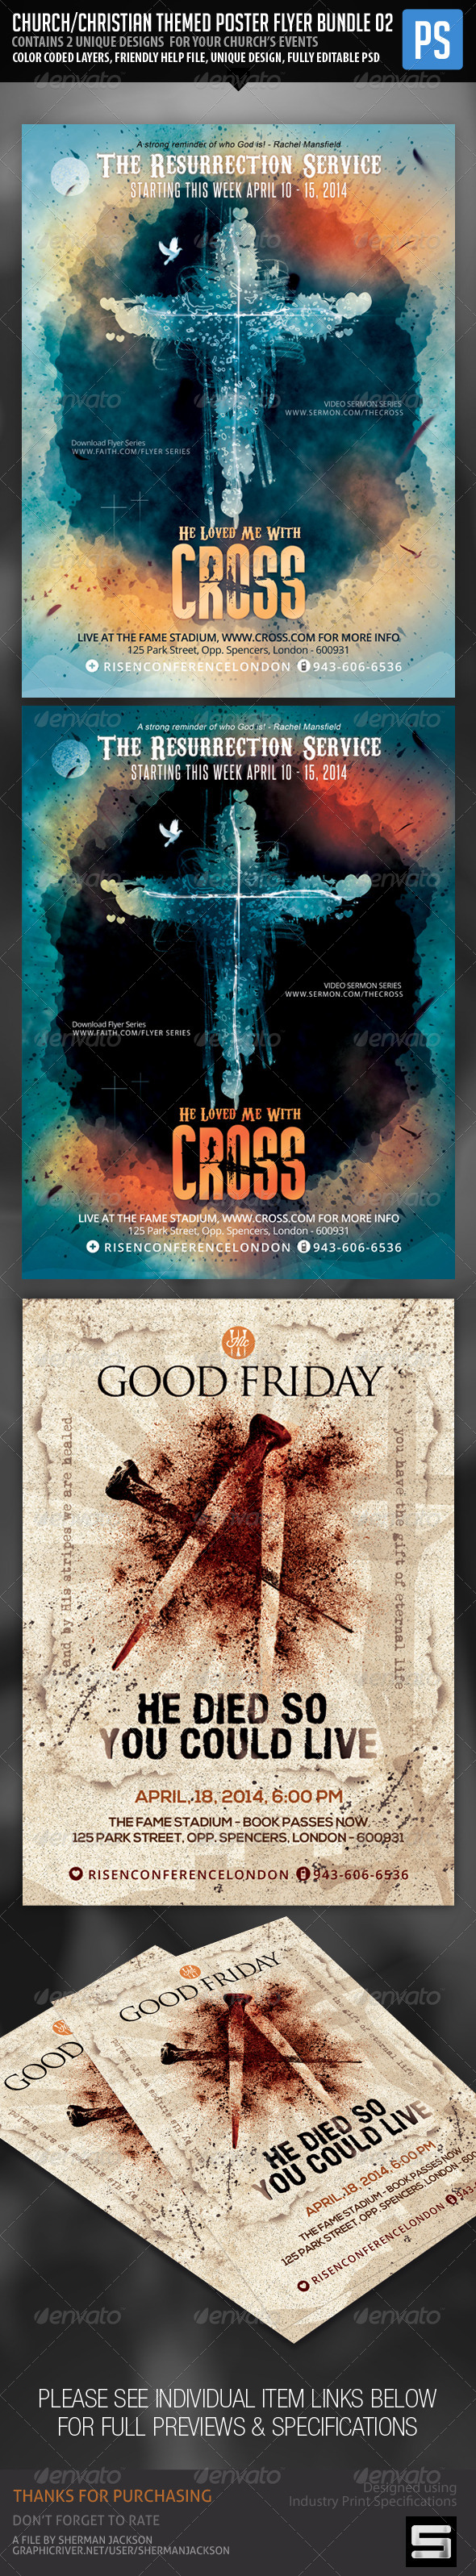 Church Christian Themed Poster Flyer Bundle#2